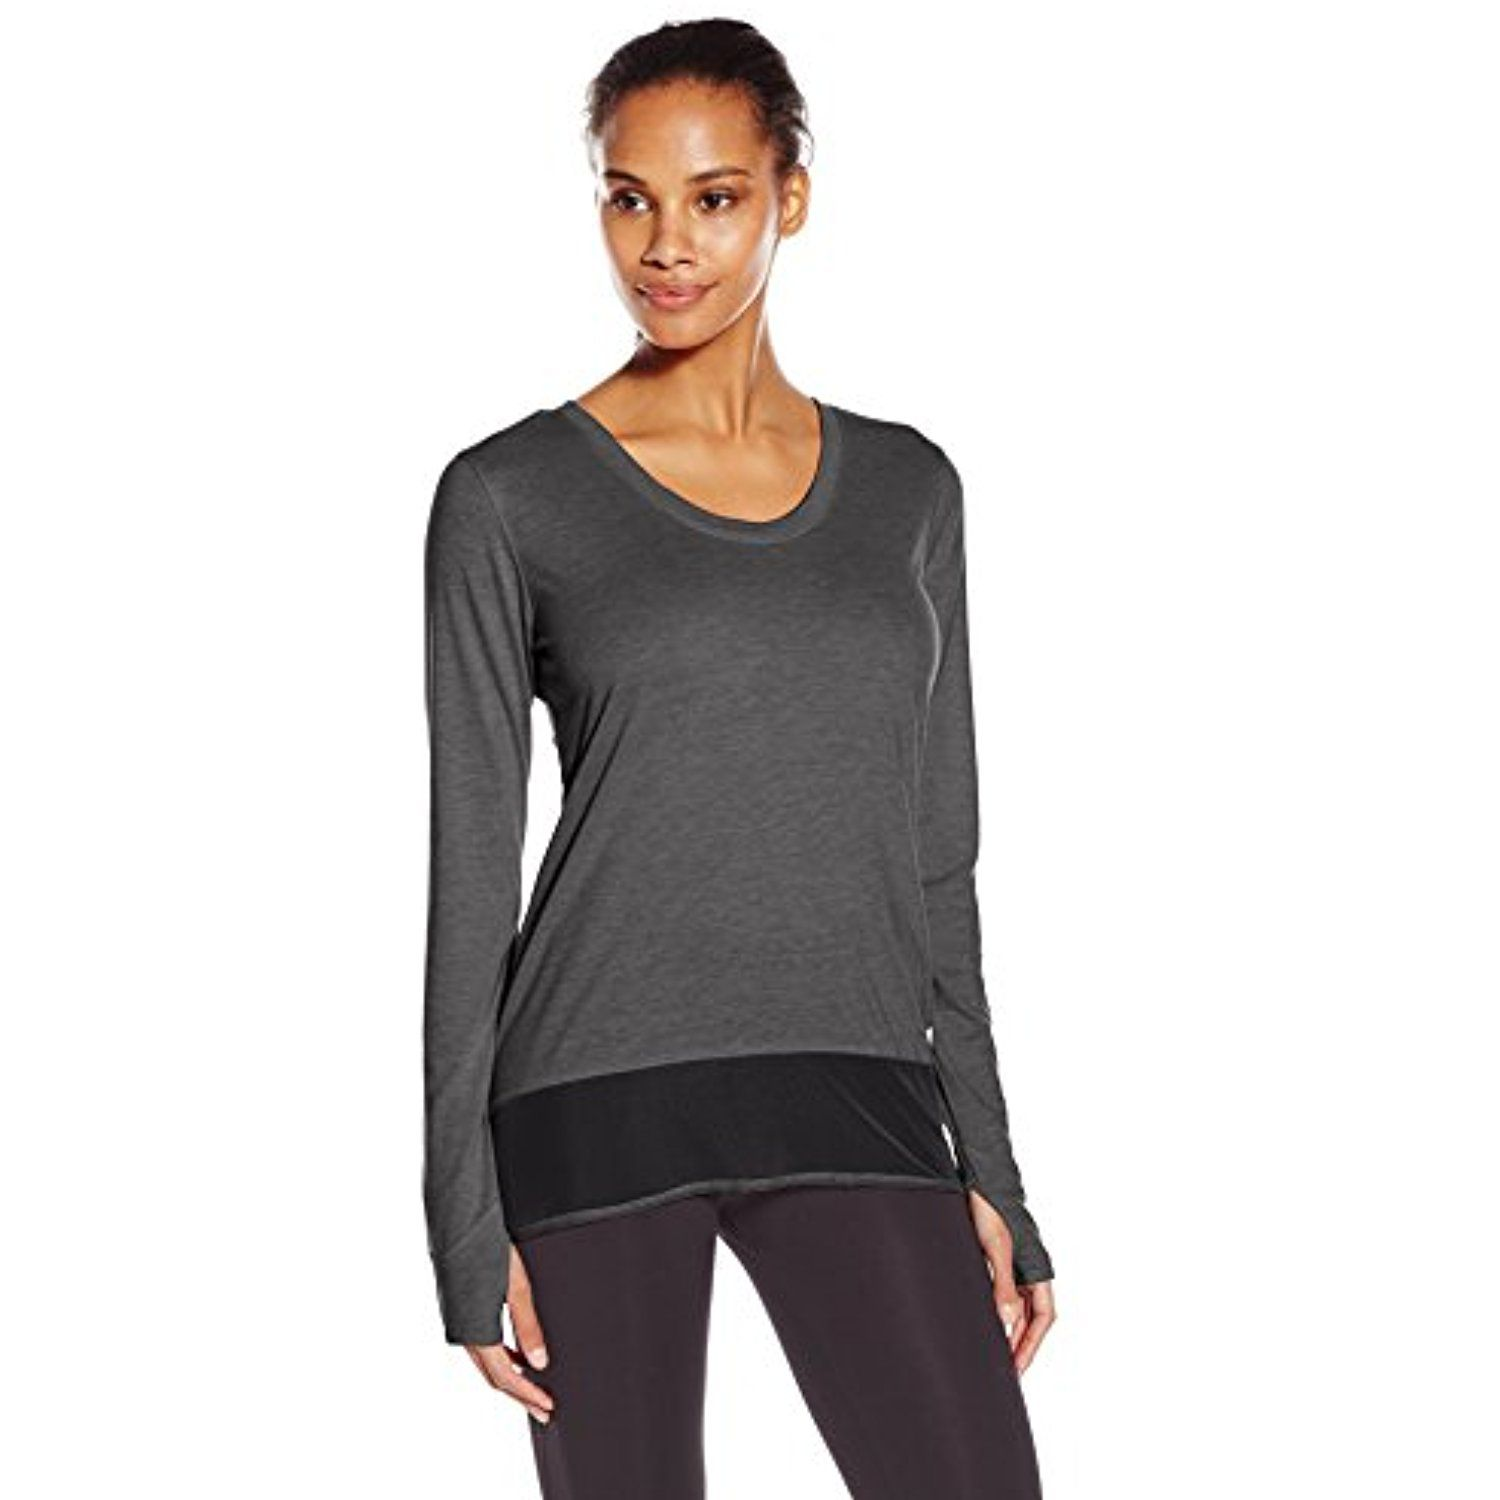 9780098b adidas Performance Women's Mixed Mesh Long-Sleeve Coverup Shirt *** Want  additional info? Click on the image. (This is an affiliate link) #Shirts